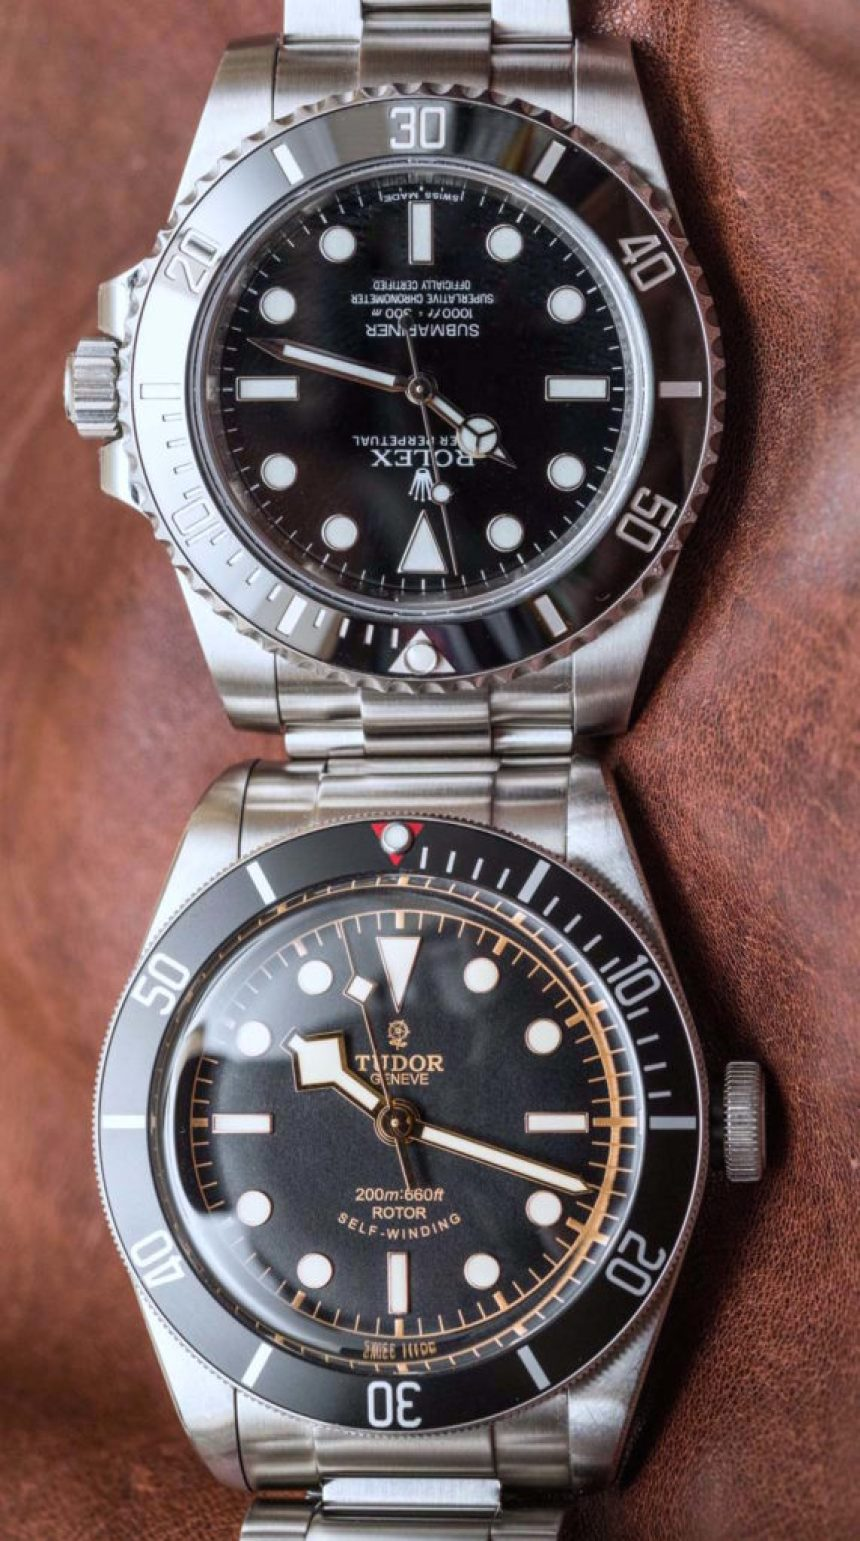 rolex submariner 114060 39 no date 39 vs tudor heritage black bay black comparison watch review